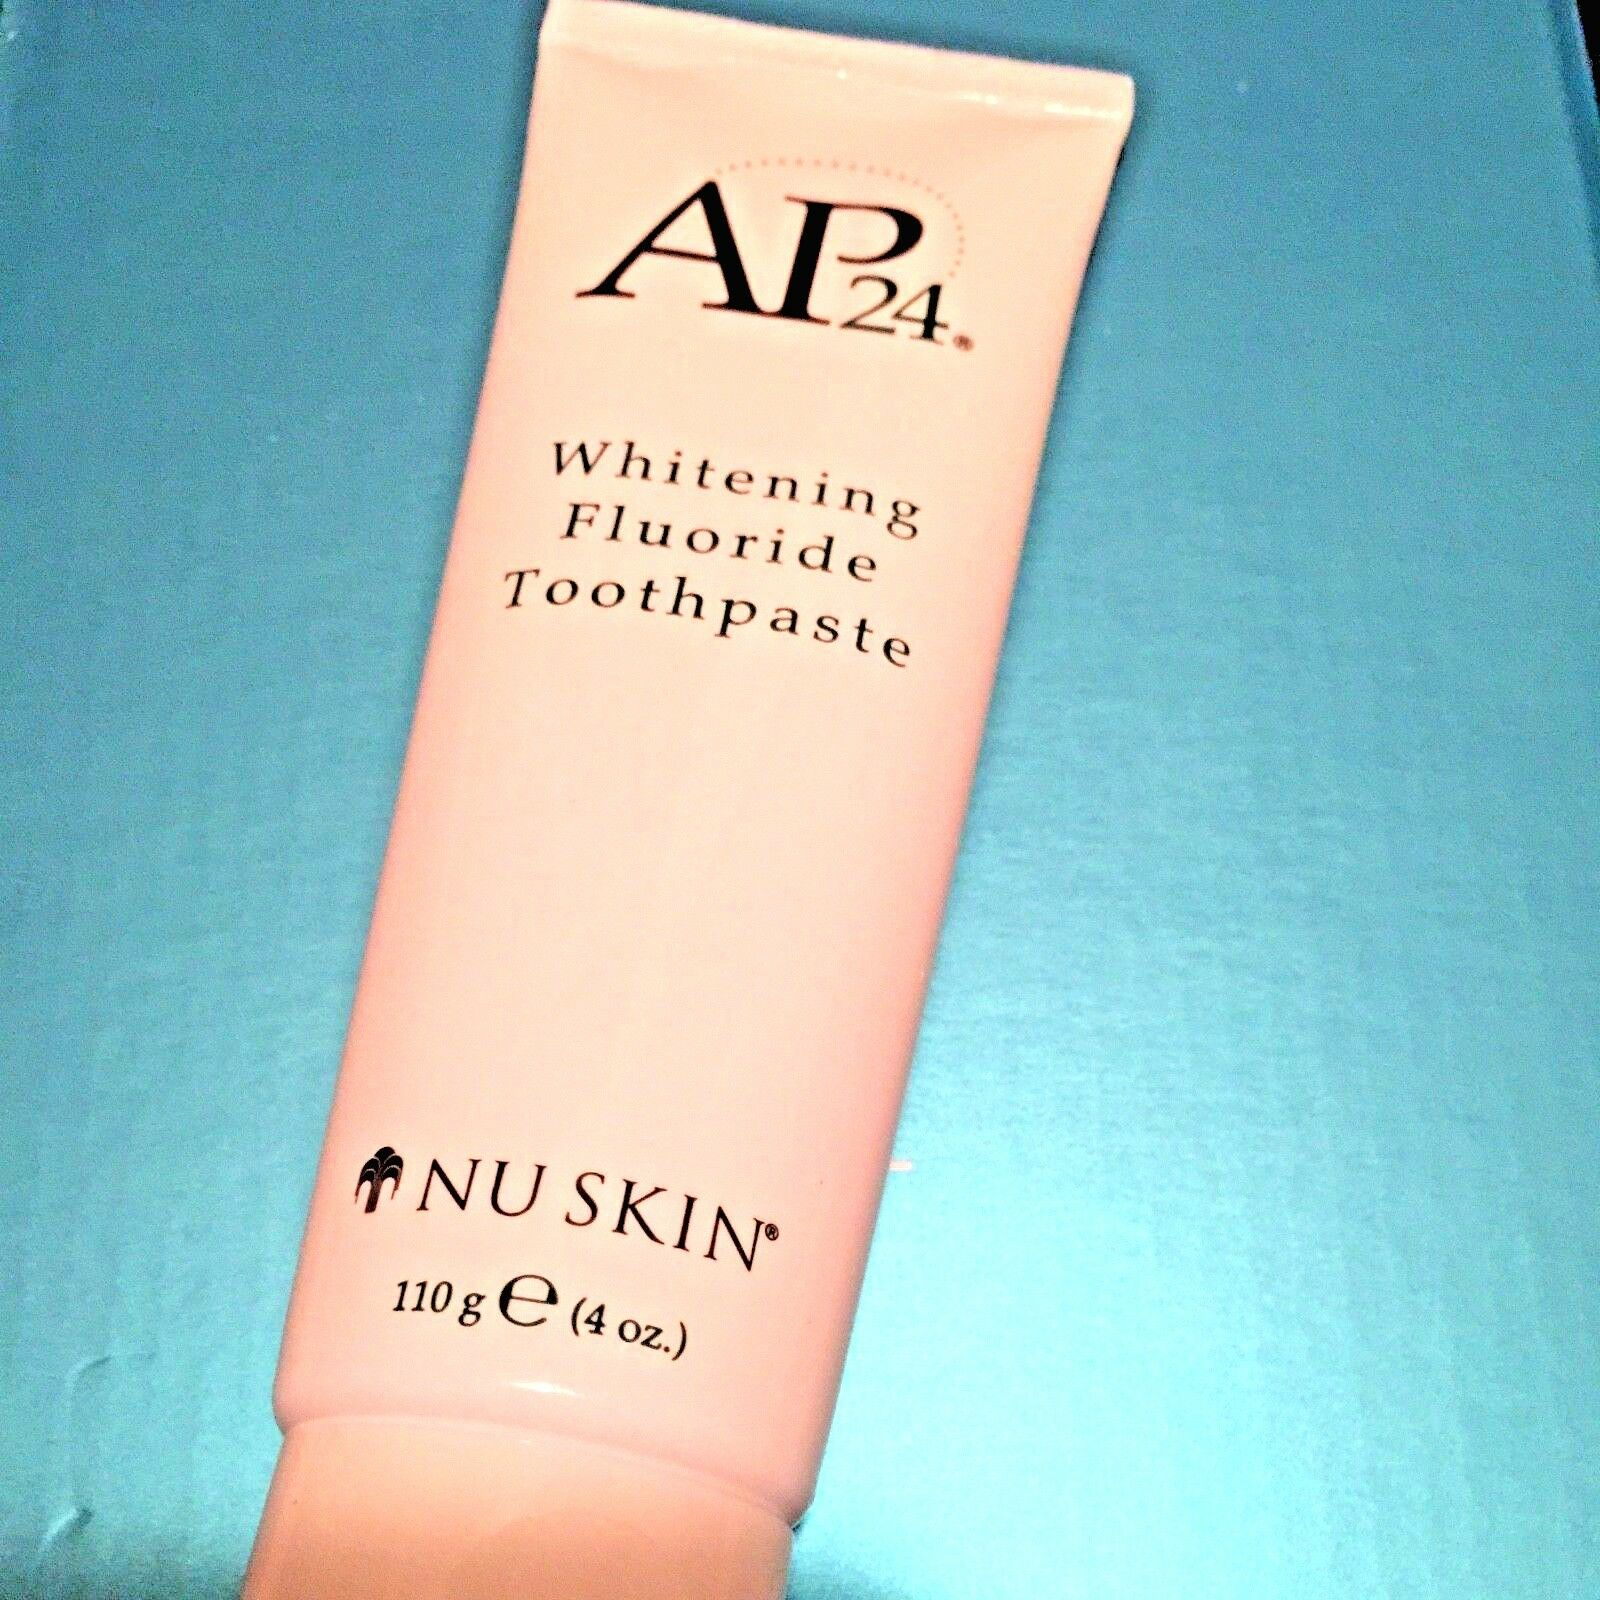 Nuskin Nu Skin Ap-24  Whitening Fluoride Toothpaste FULL SIZE Exp 2021 AUTHENTIC